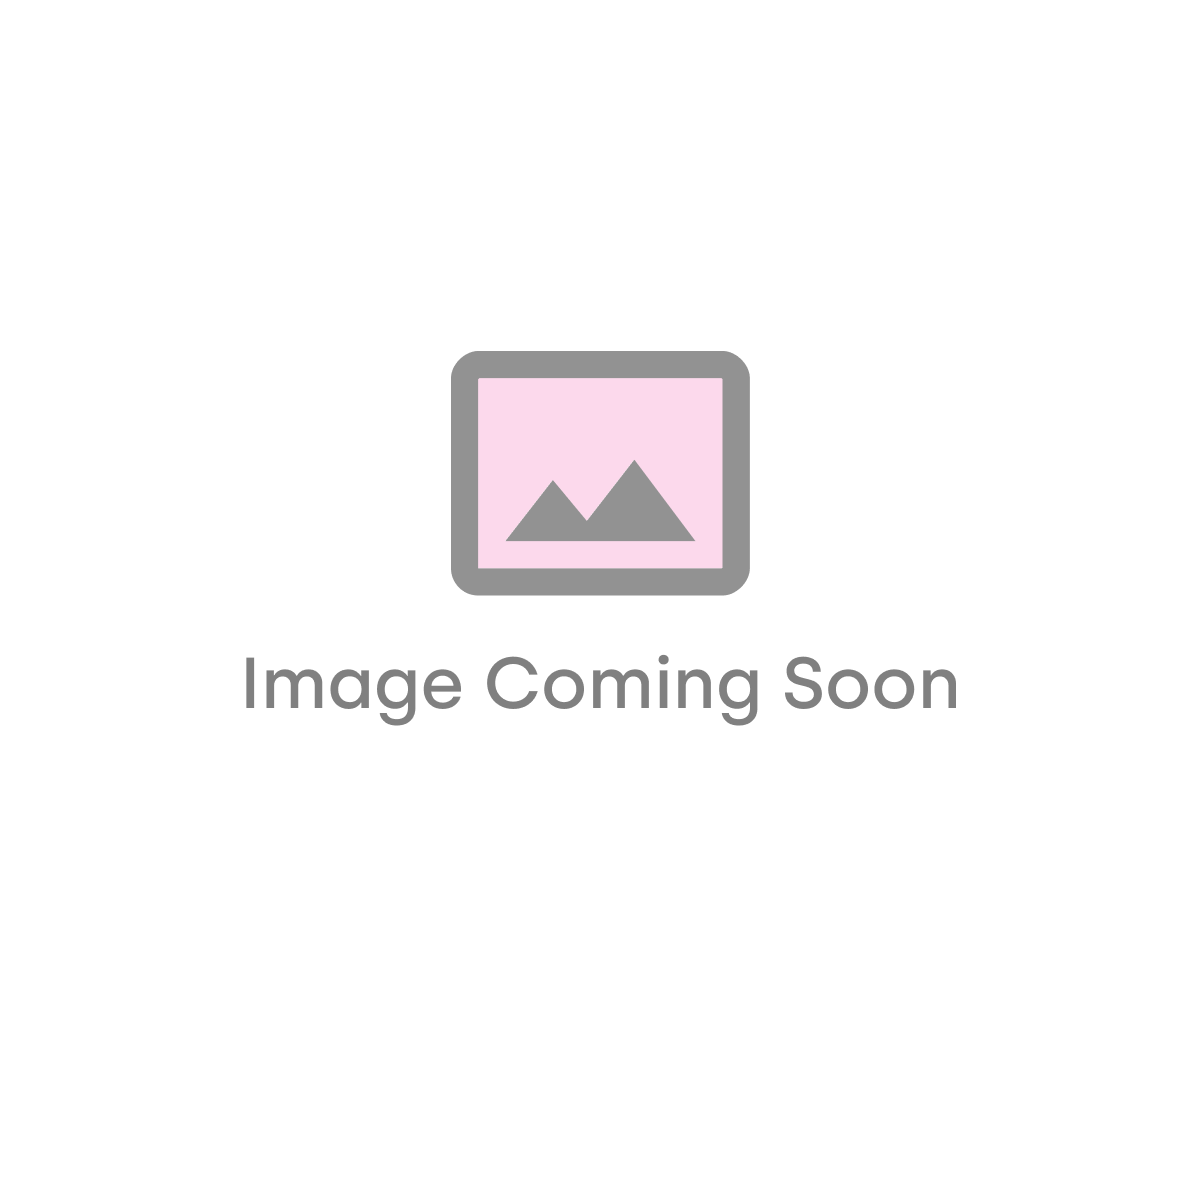 Moods Bathrooms to Love Solarna L-Shape 1700 x 700mm Shower Bath inc. Screen - Left Hand (13359)